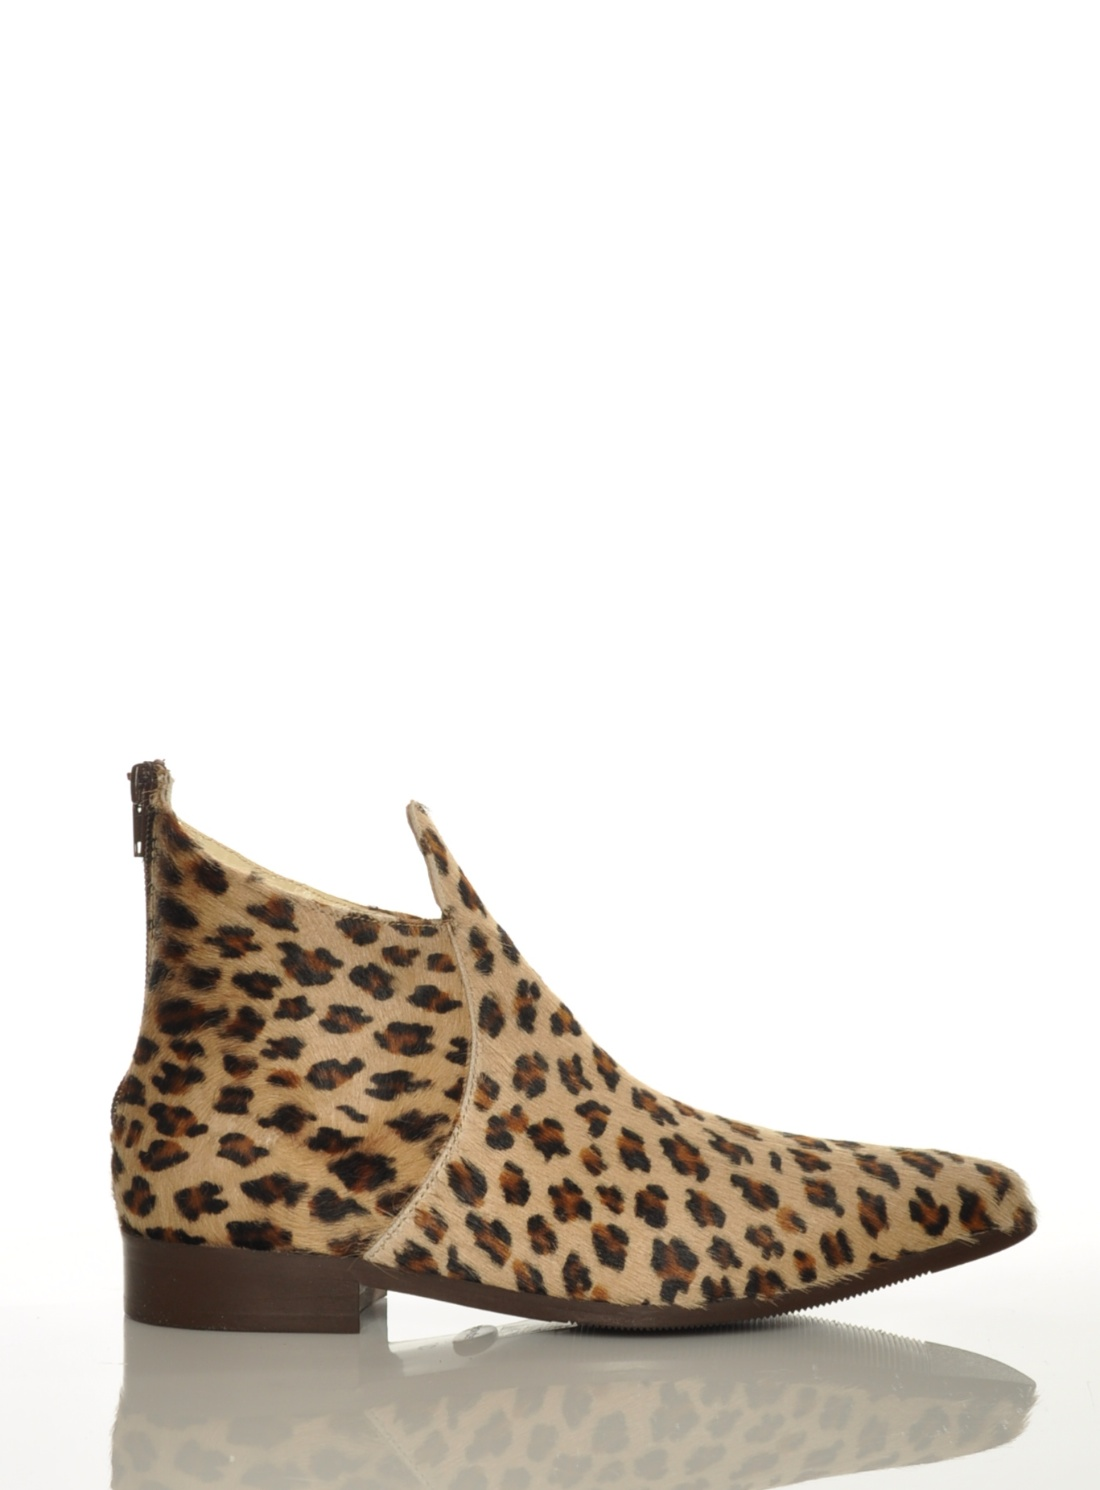 #Albia #Leopard #Ponyskin #Chelsea Boot by Red By Wolves #Shoes